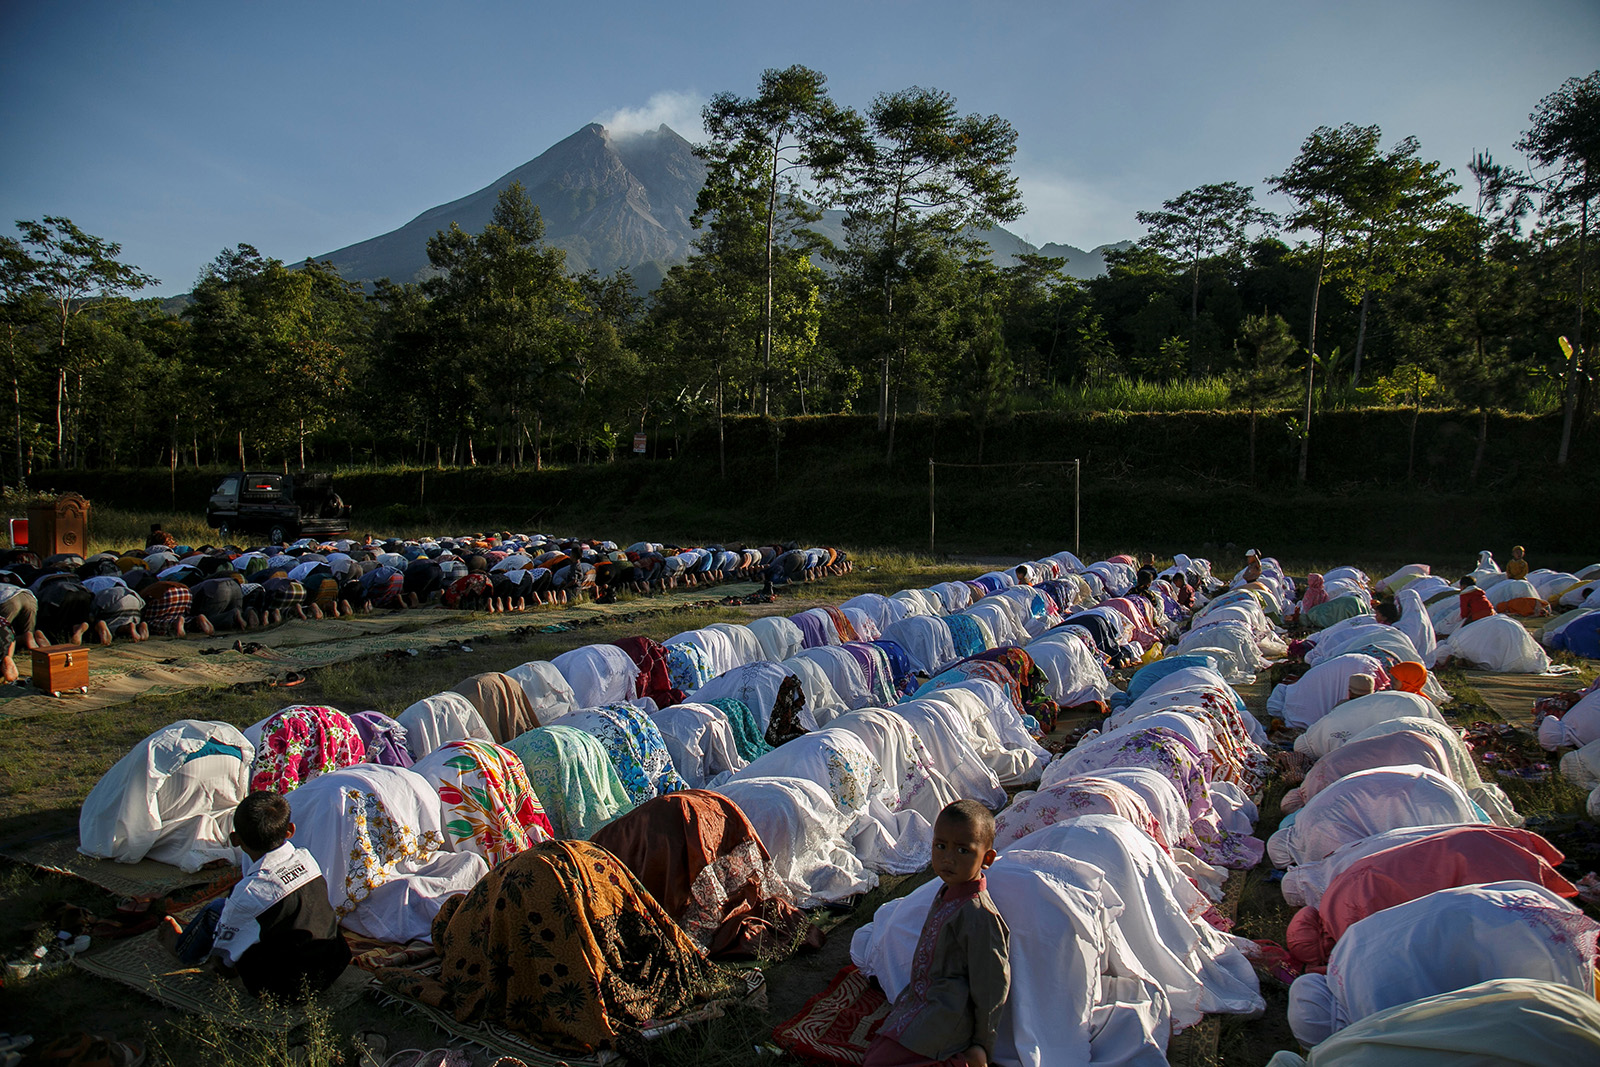 Muslims perform prayers to celebrate Eid al-Fitr, marking the end of the holy fasting month of Ramadan, near Mount Merapi volcano in Sleman Regency, Yogyakarta